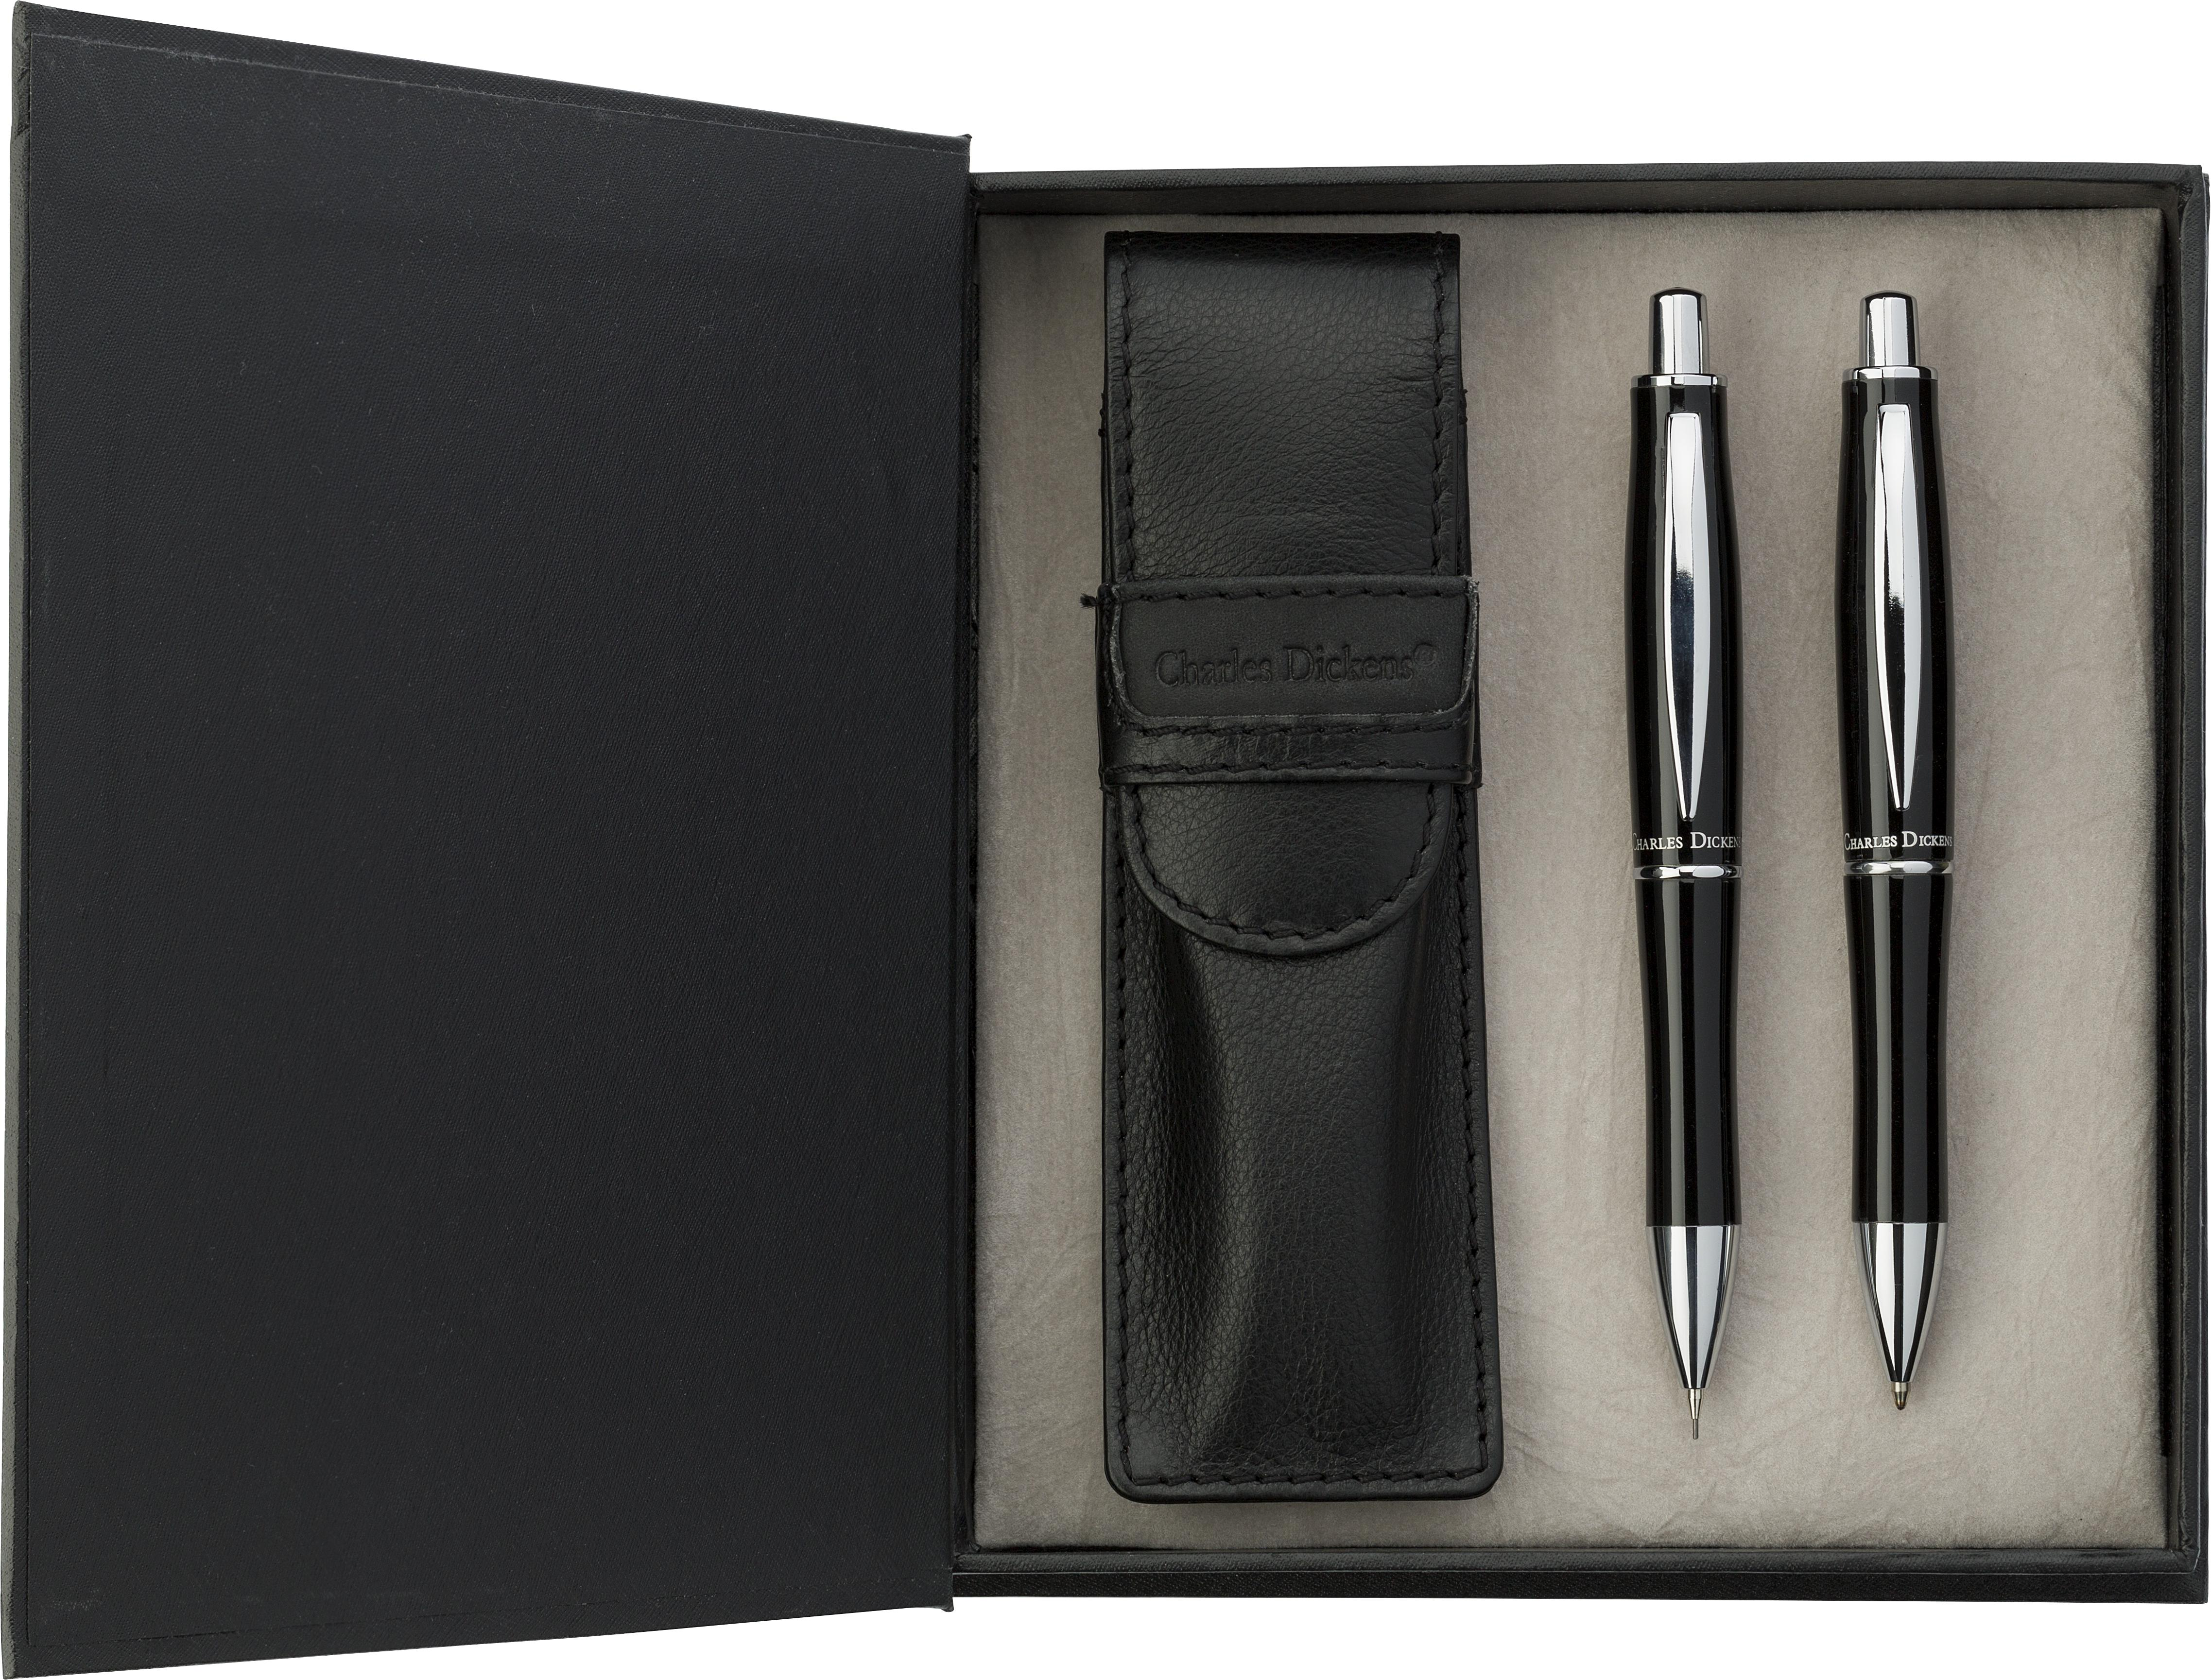 Promotional Charles Dickens® writing set.